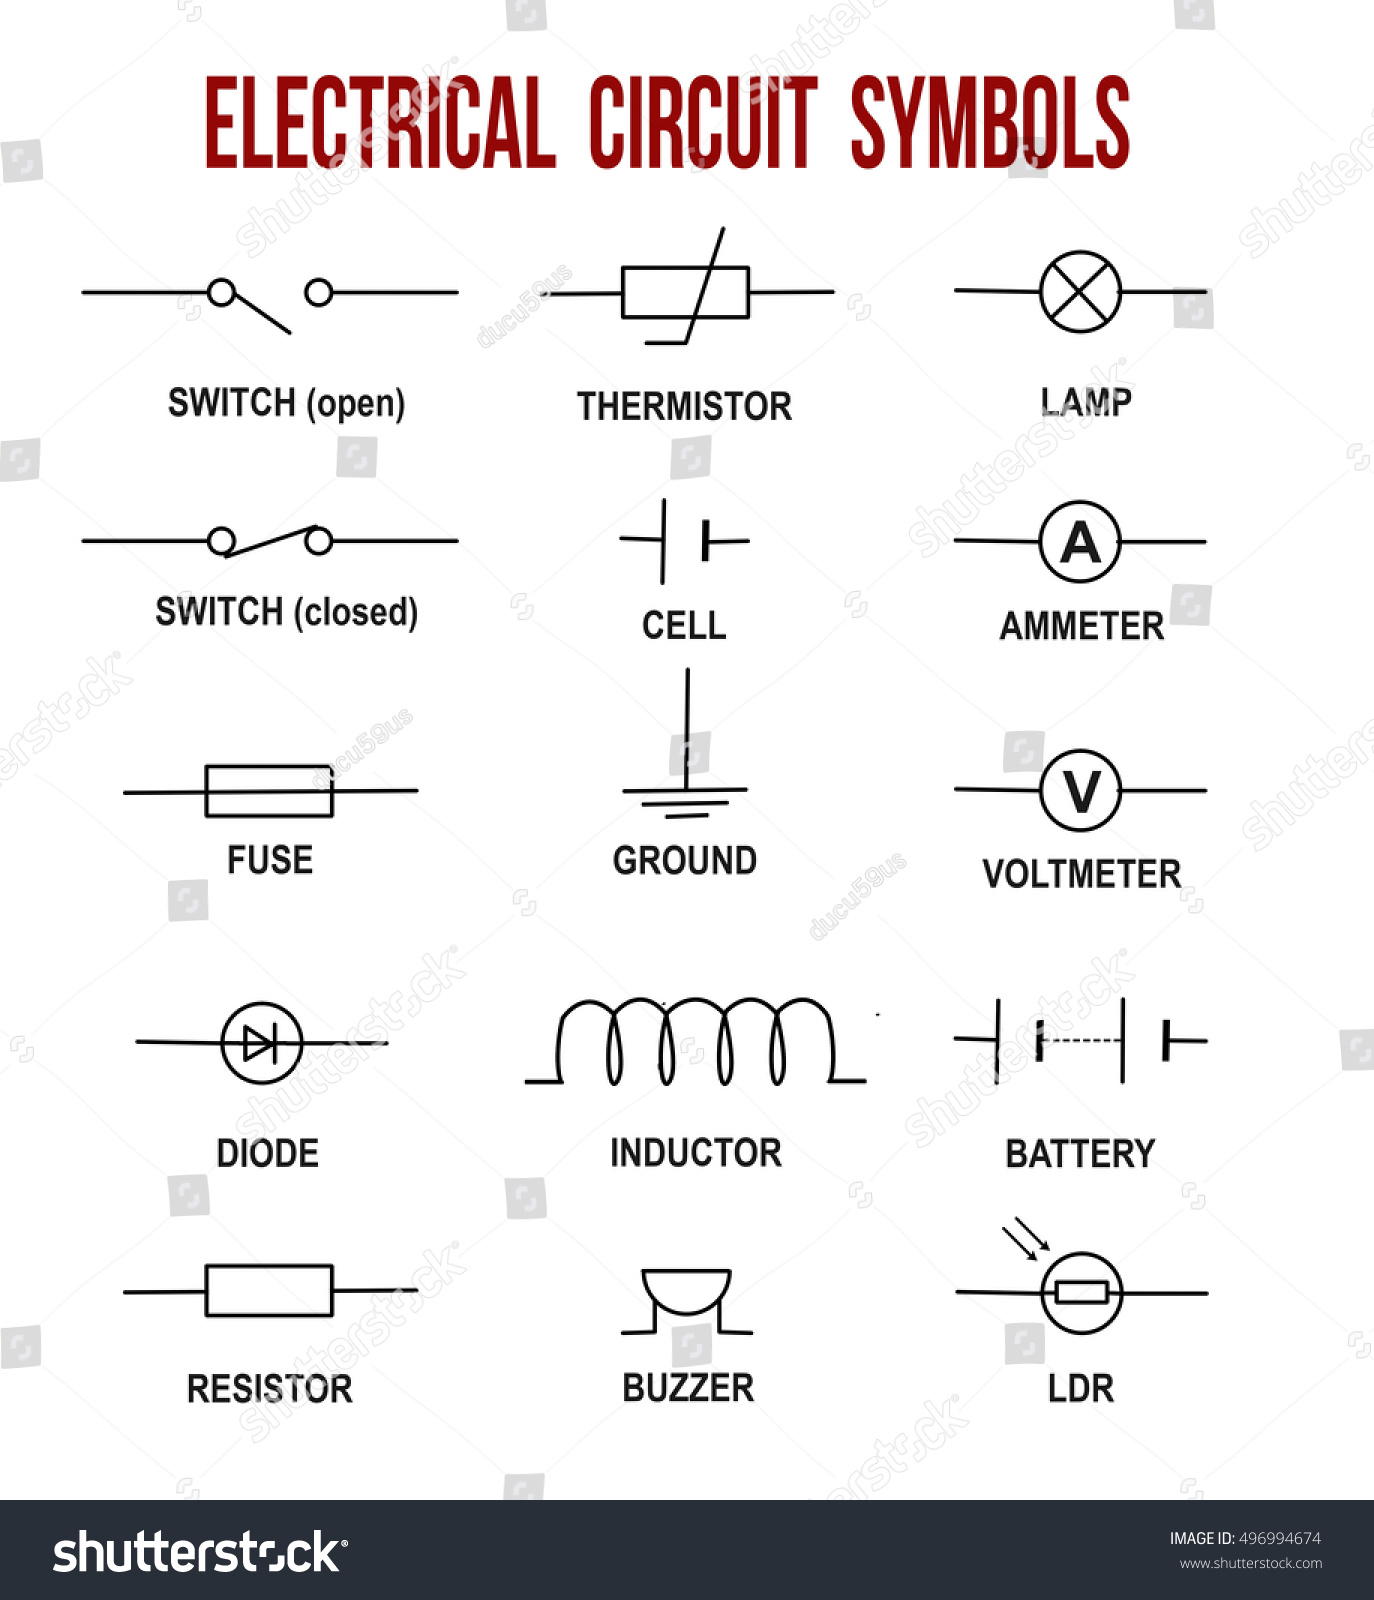 Electrical Schematic Diagram Symbols Further Plex Electrical Schematic